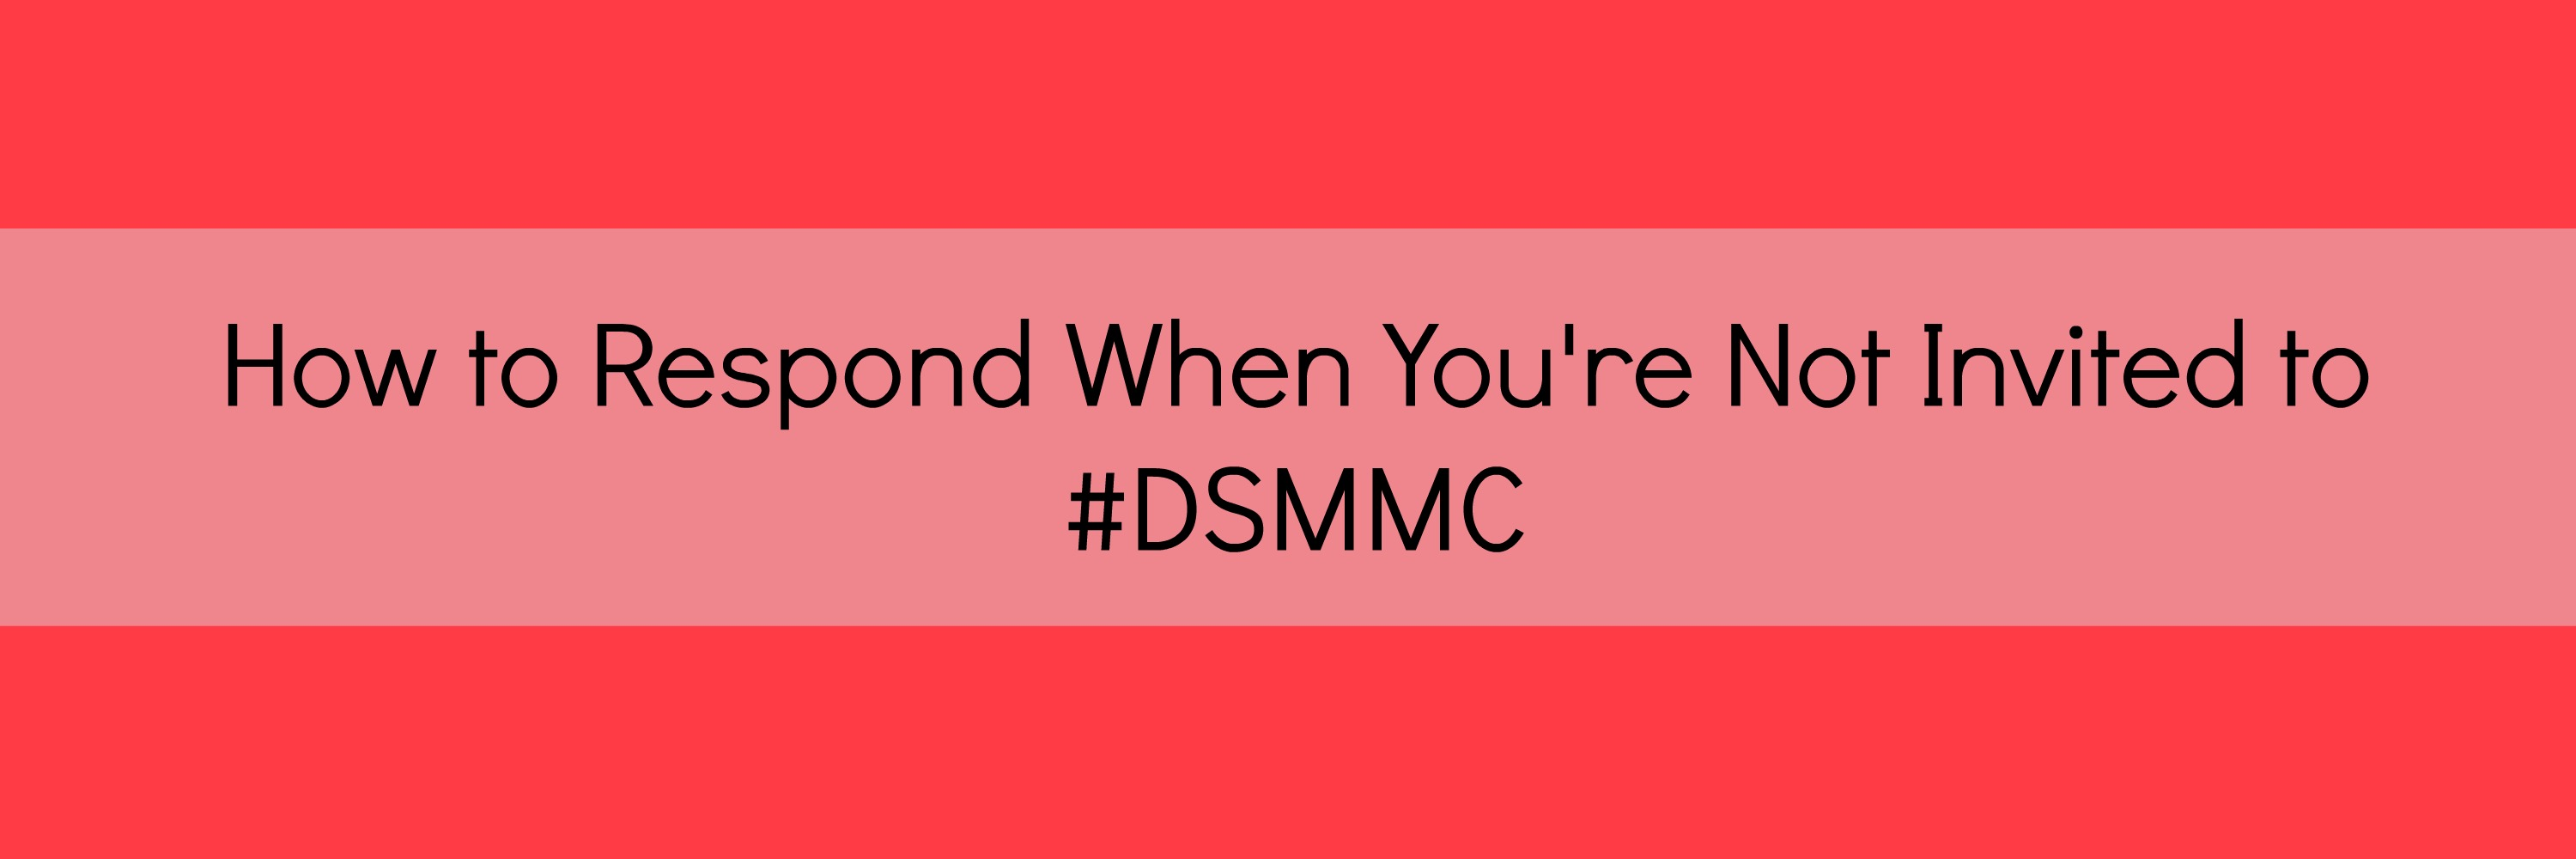 How To Respond When You Don't Get Invited to #DSMMC